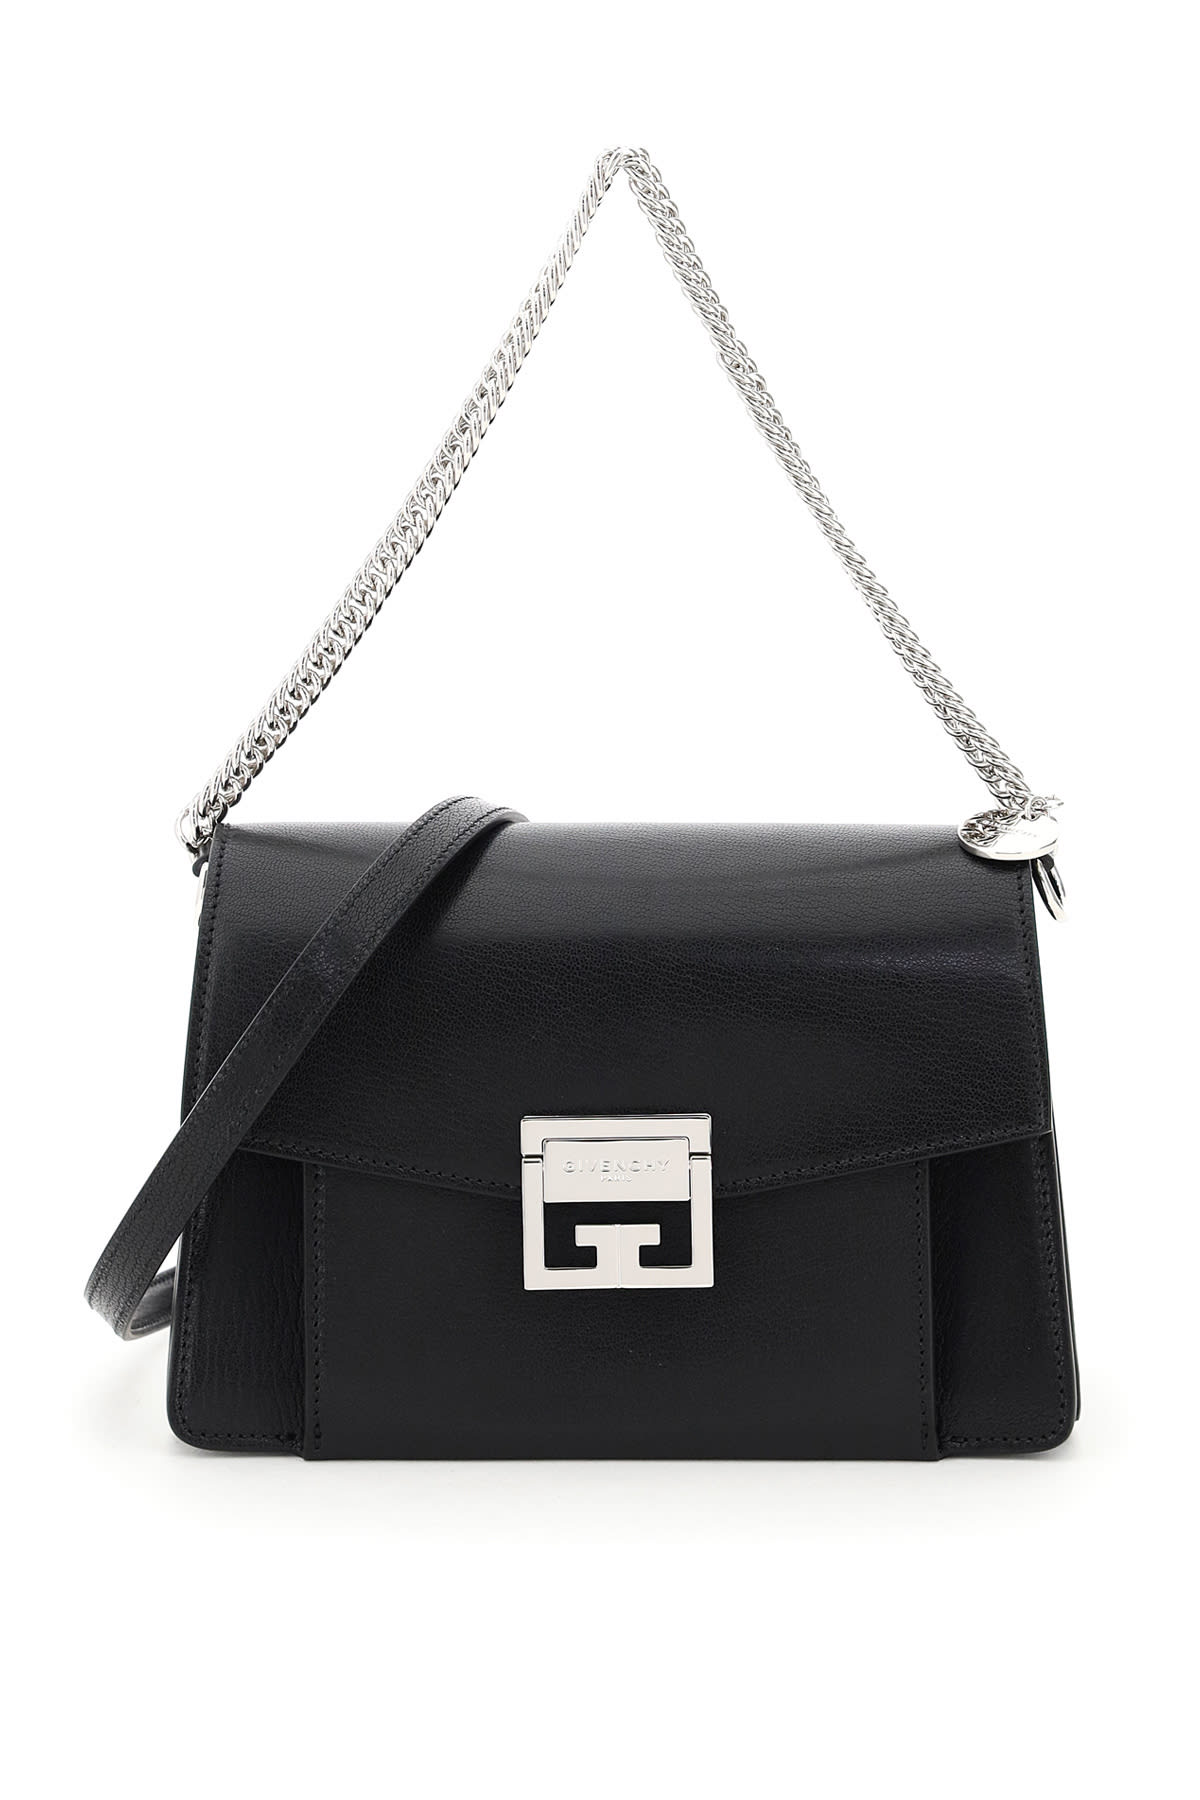 Givenchy GV3 SMALL LEATHER BAG